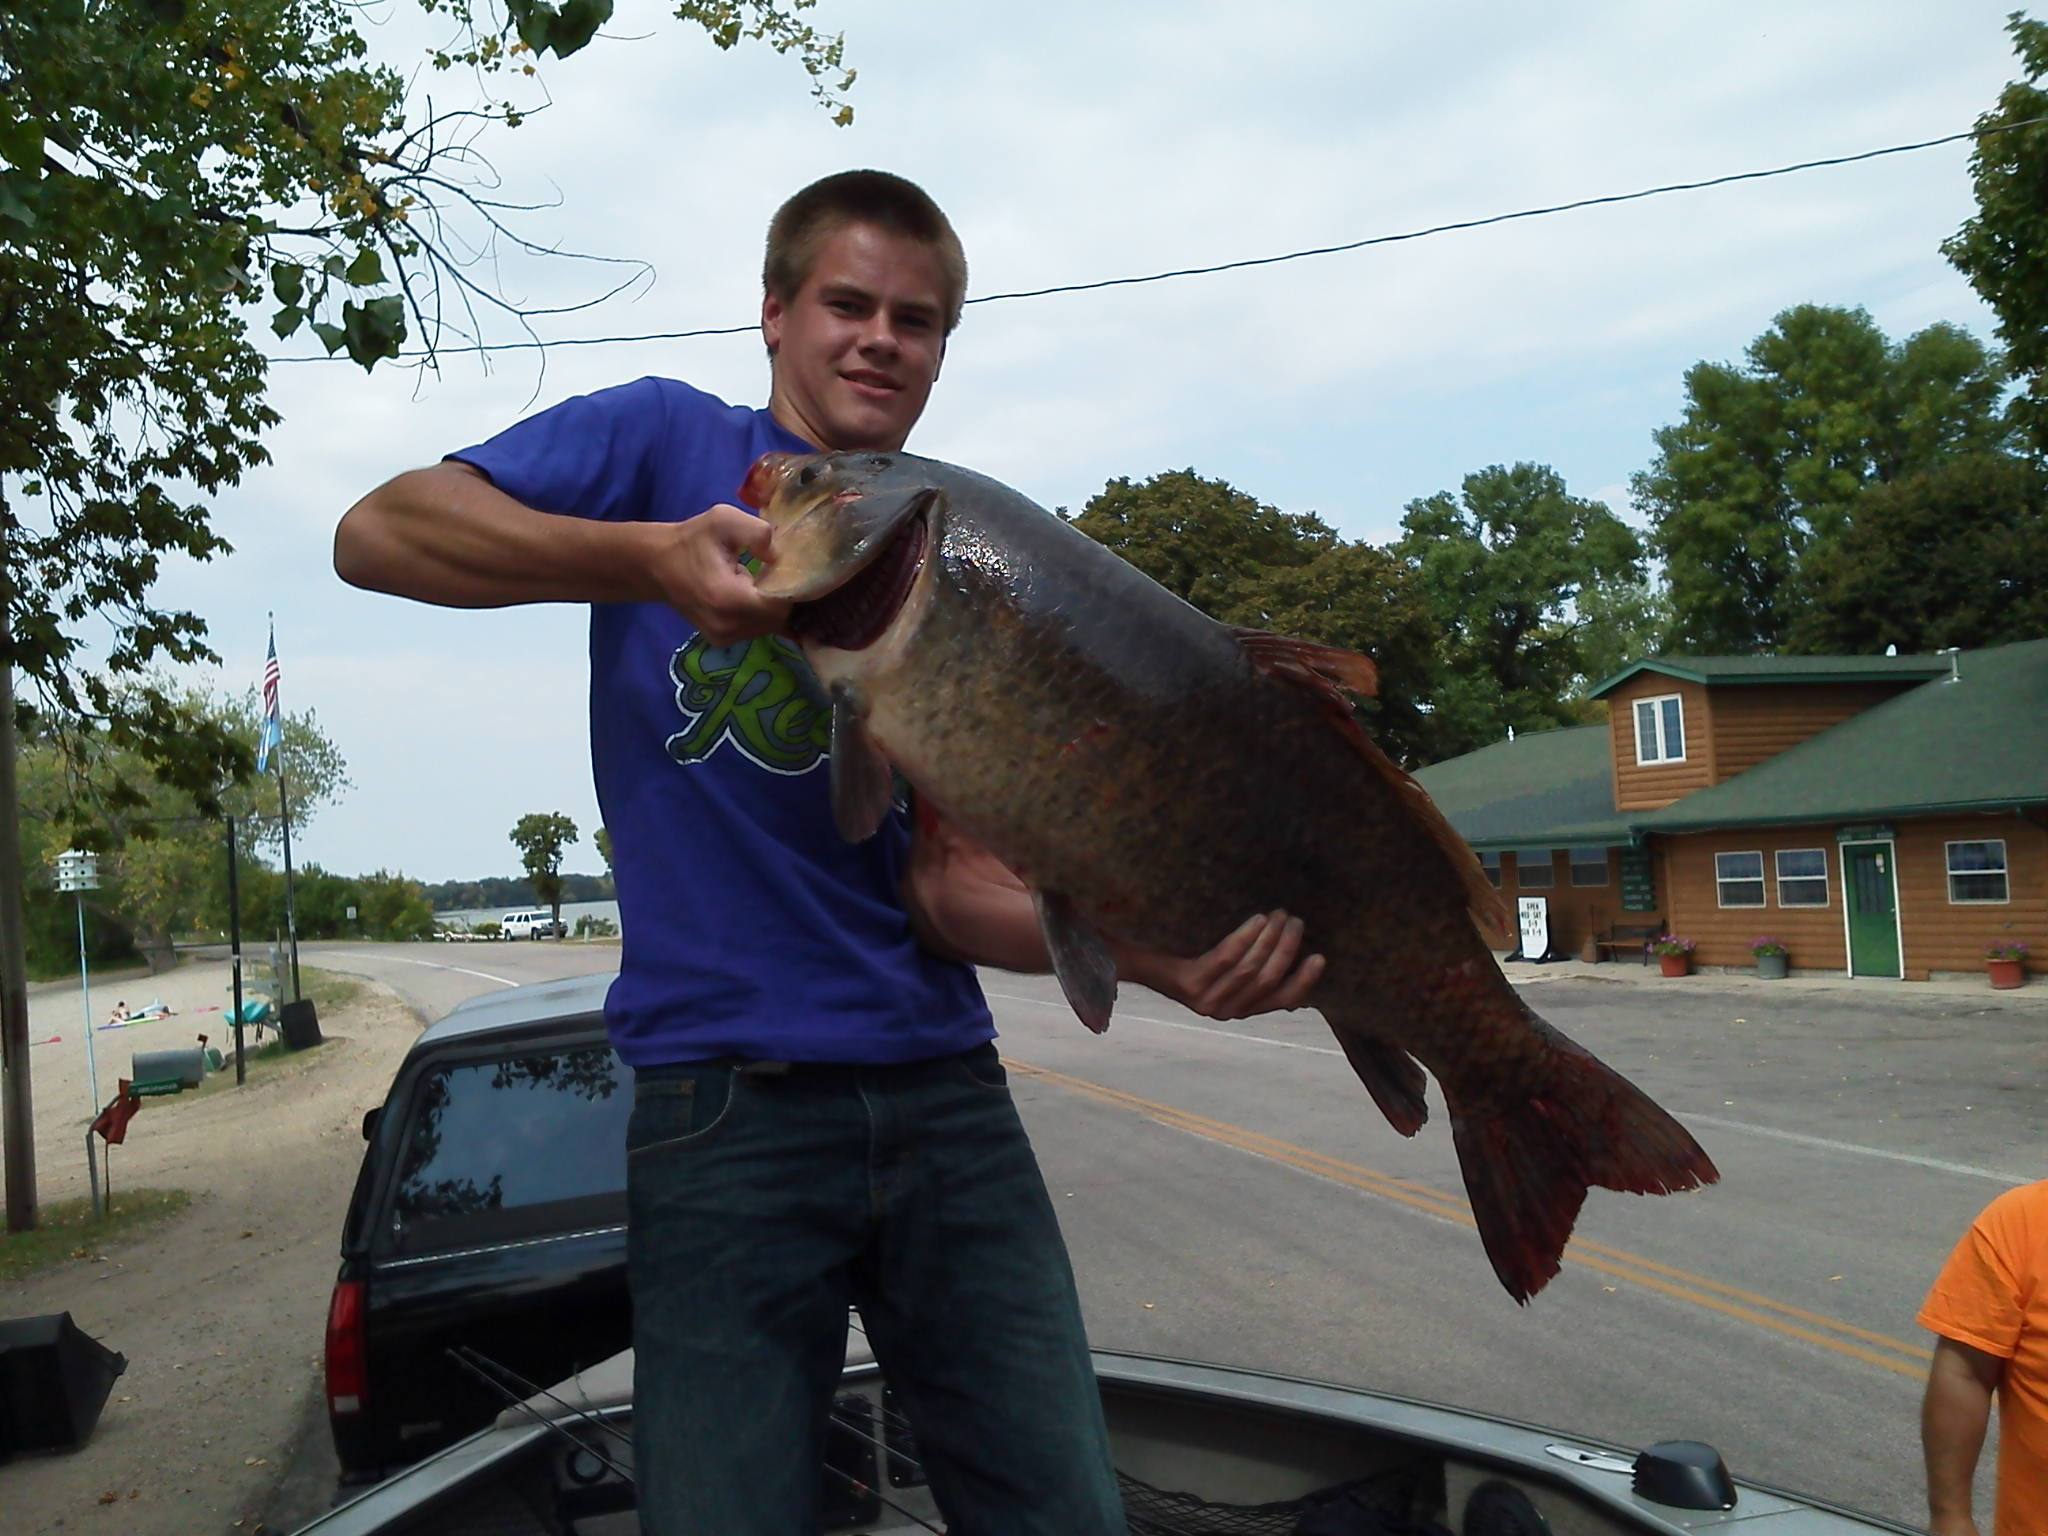 Scott Erickson ortonville Minnesota  trolling for walleyes and using 8 lb. test caught this 30